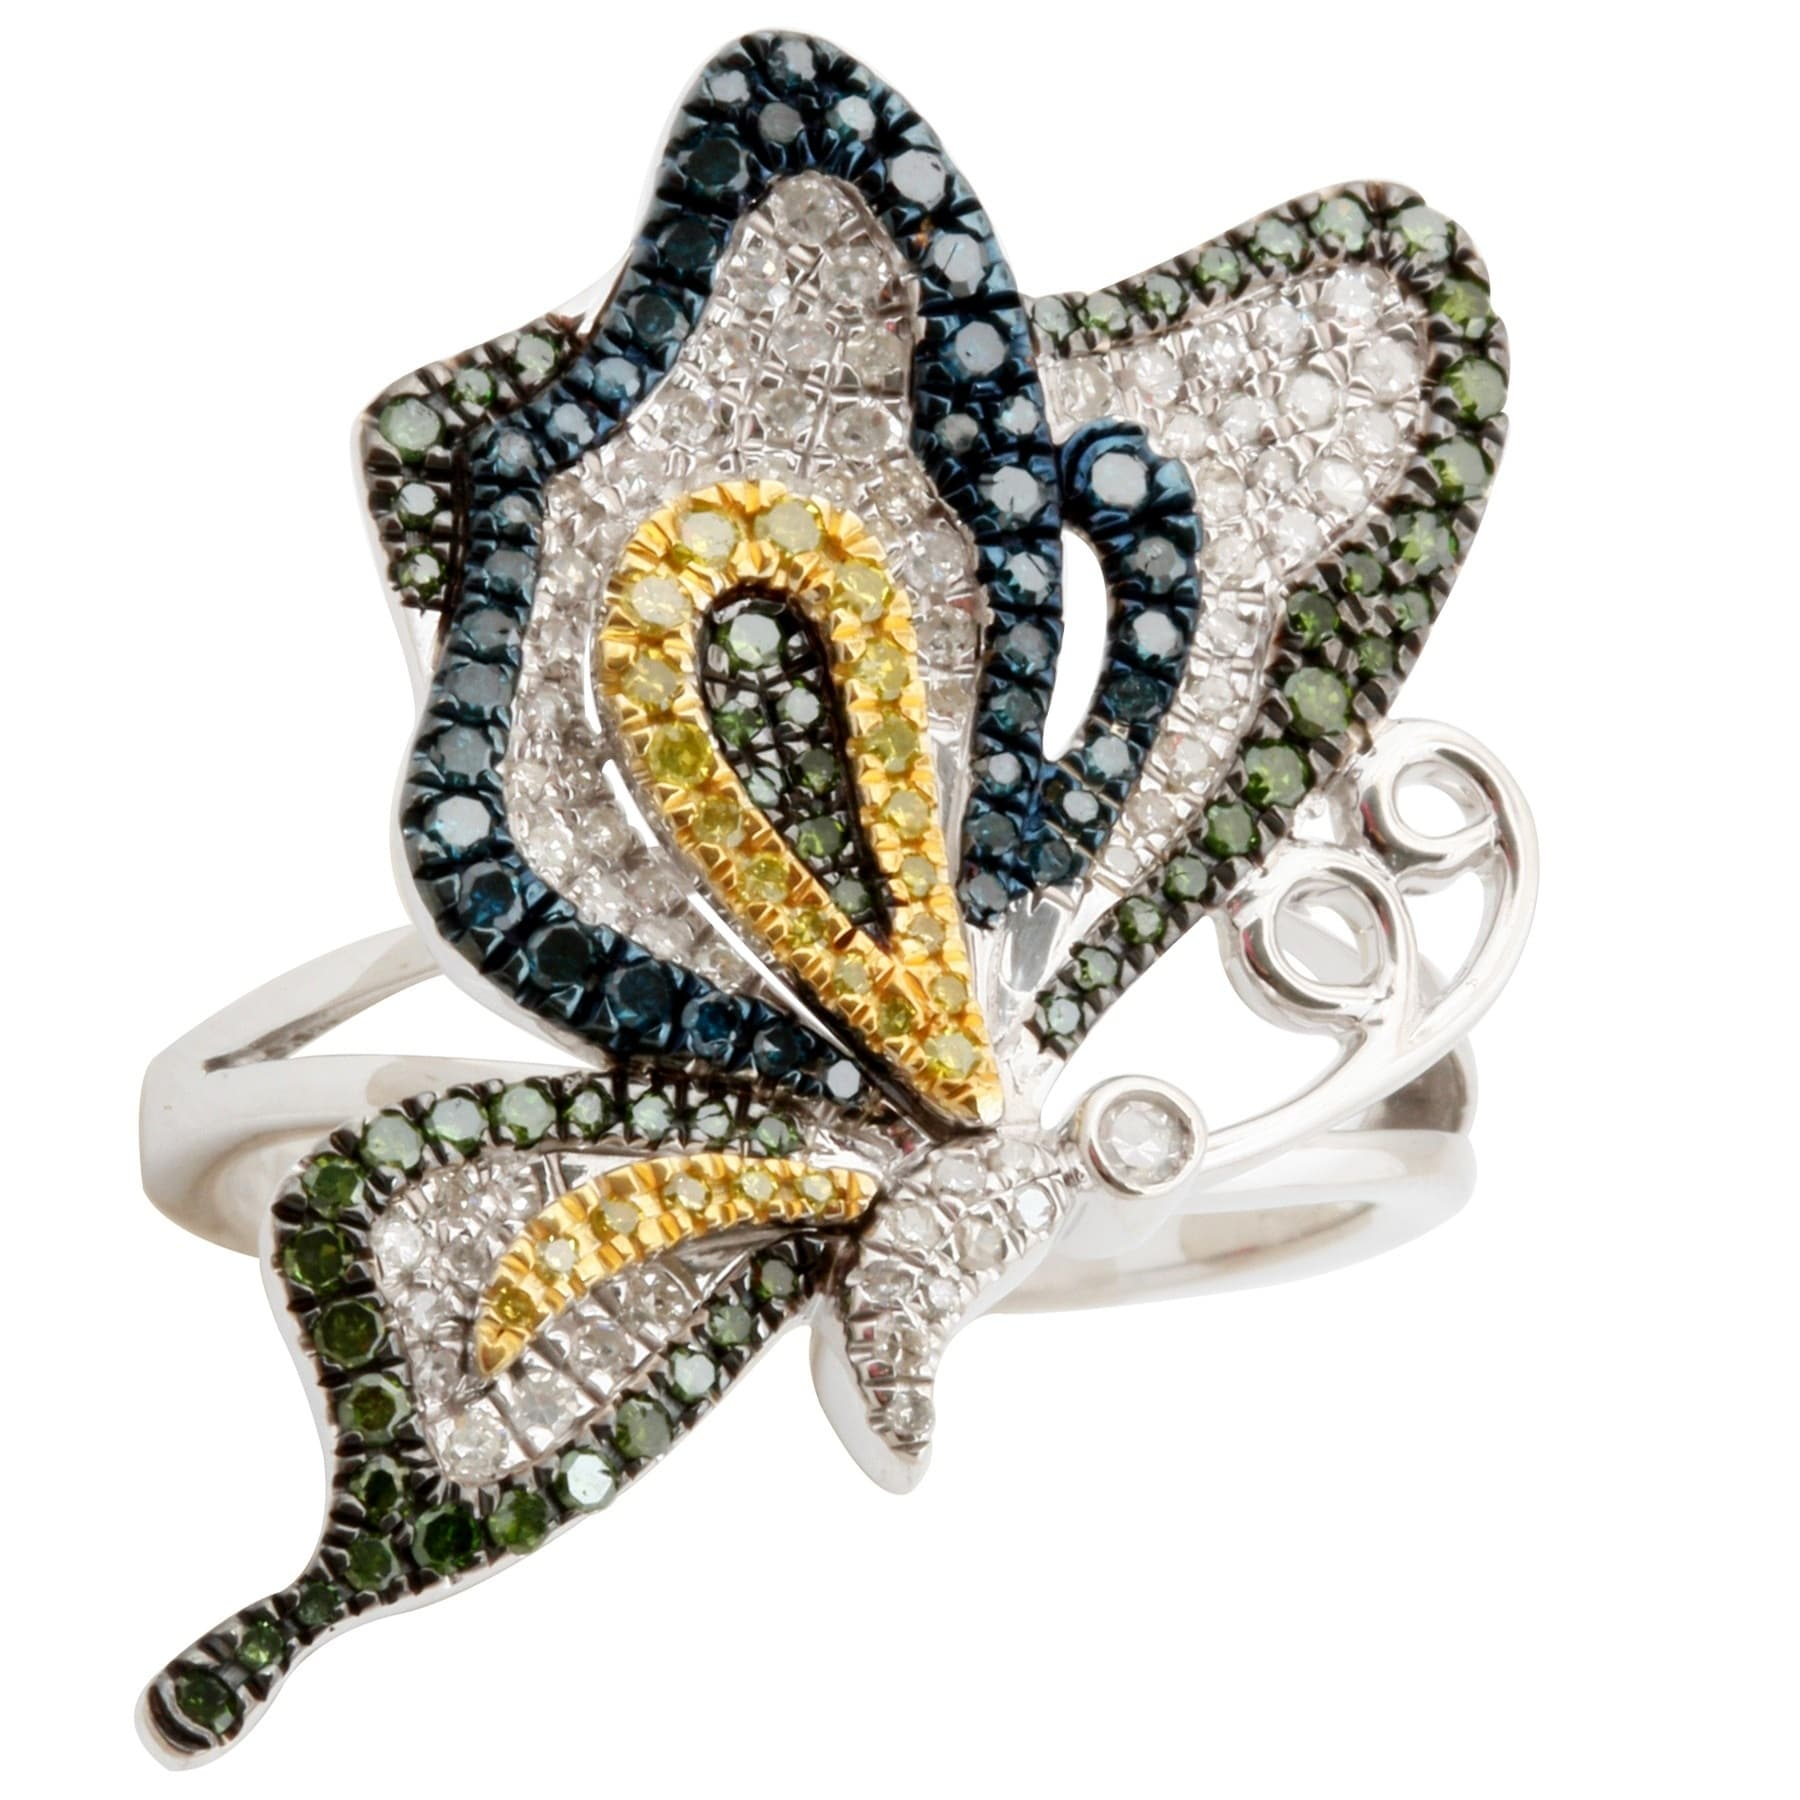 Fabulous 1.01 TCW Real Round Brillaint Cut Multi Color Diamond With Diamond Butterfly Ring - Thumbnail 0